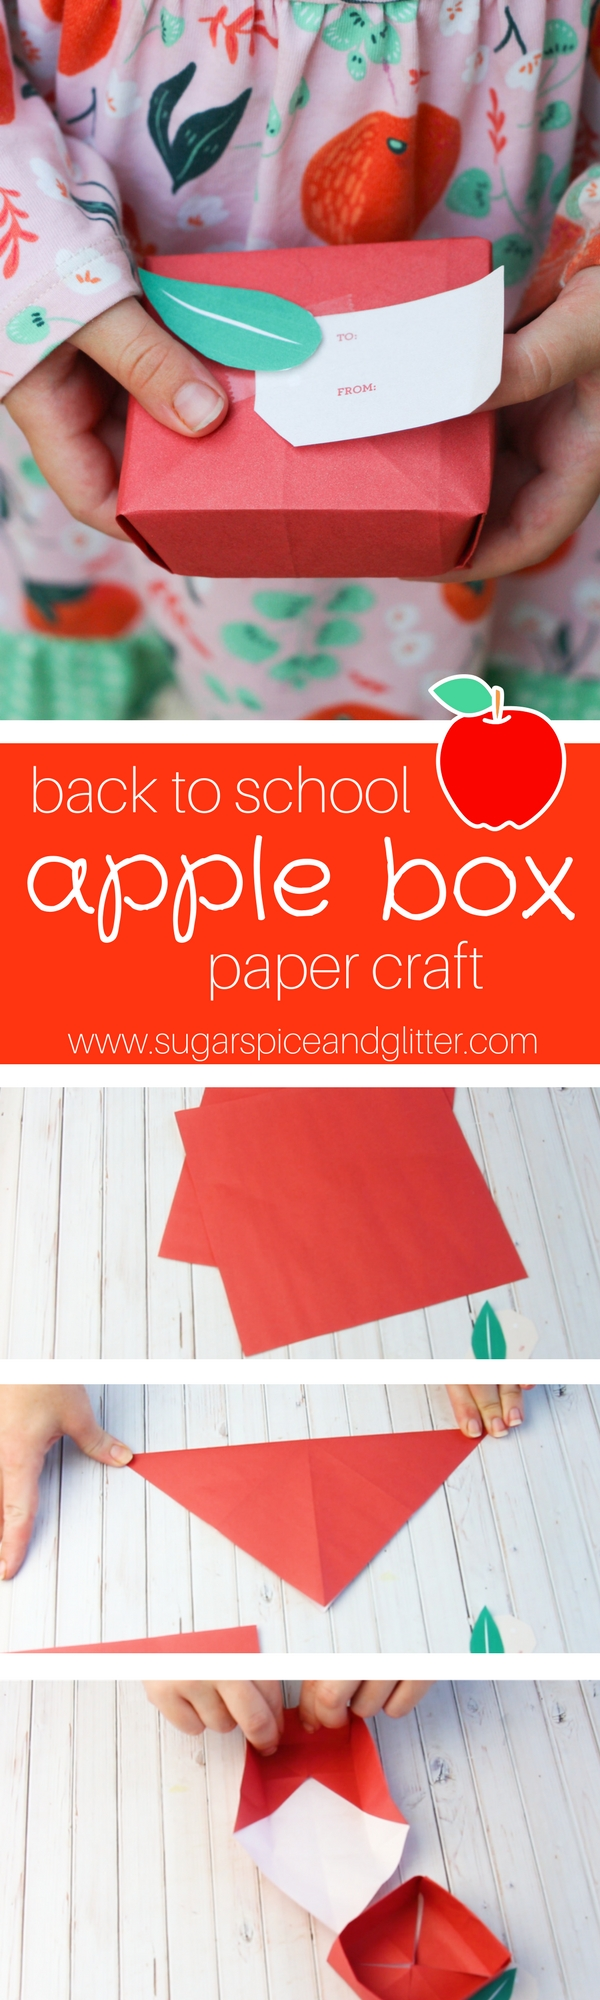 Apple Box Craft for Back to School - an easy first origami project